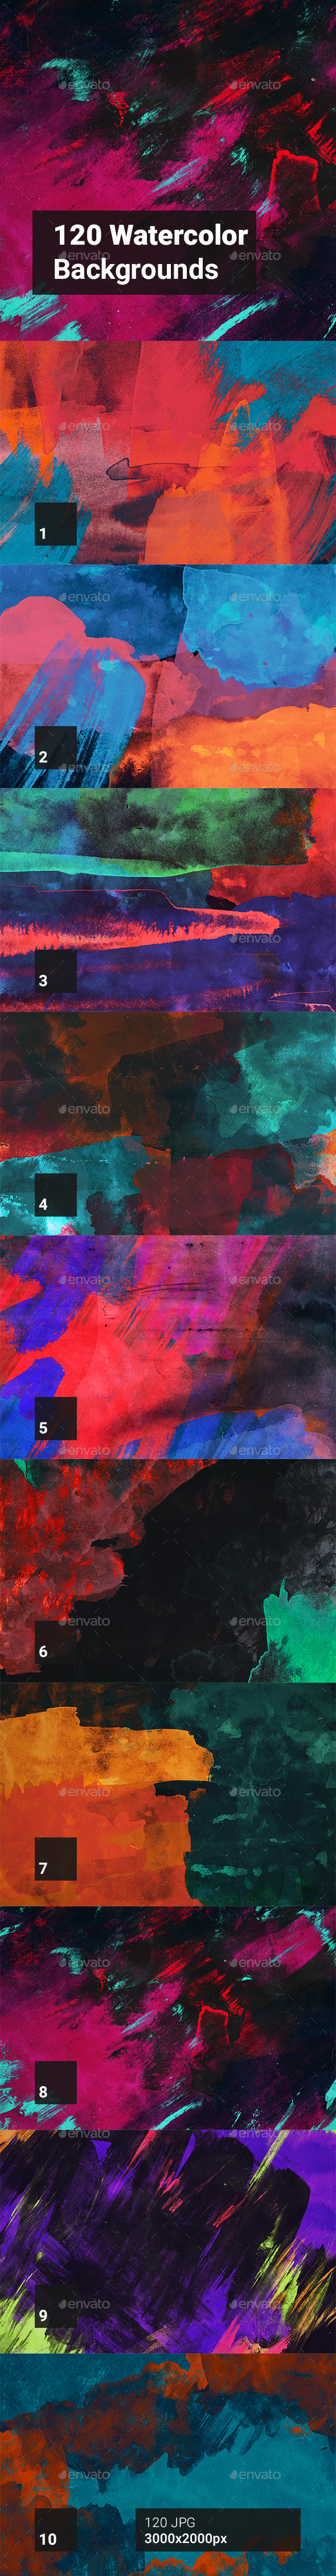 120 Watercolor Backgrounds - Abstract Backgrounds